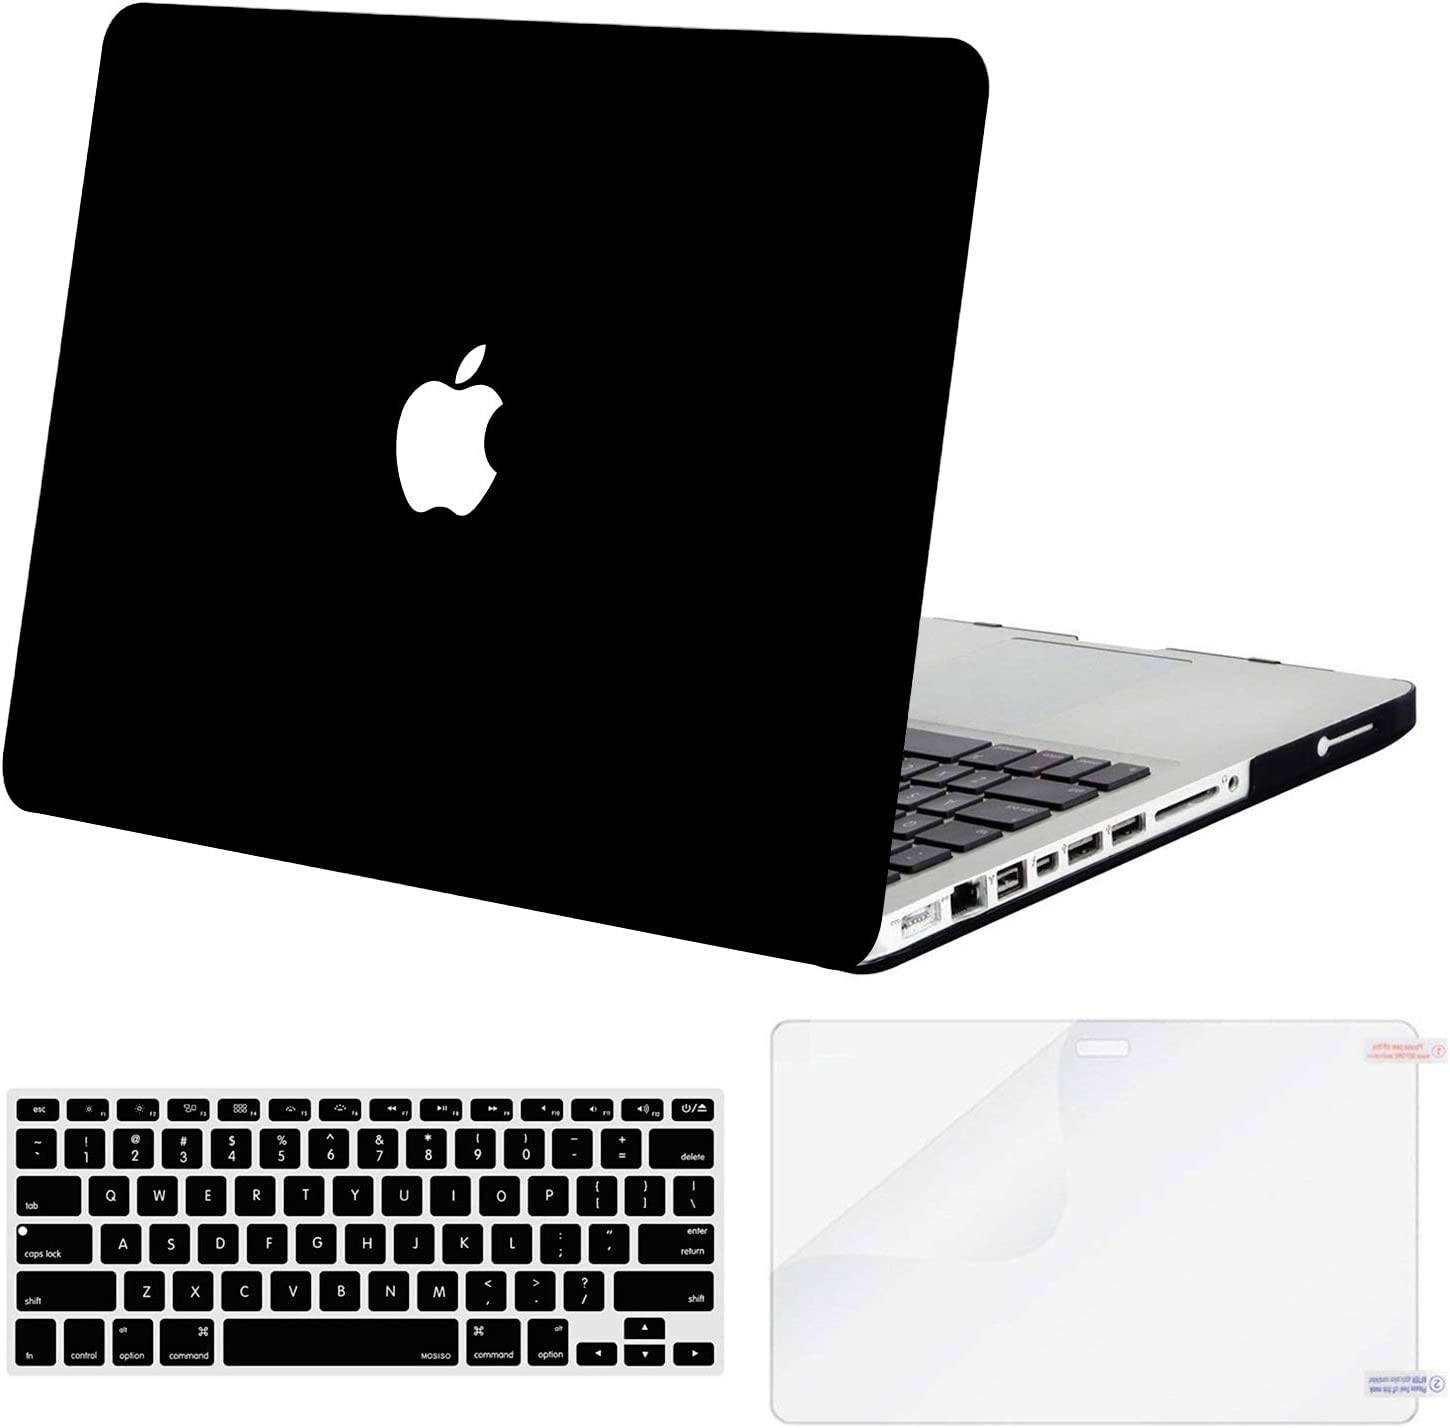 MOSISO Plastic Hard Shell Case & Keyboard Cover & Screen Protector Only Compatible with Old Version MacBook Pro 13 Inch (A1278, with CD-ROM), Release Early 2012/2011/2010/2009/2008, Black